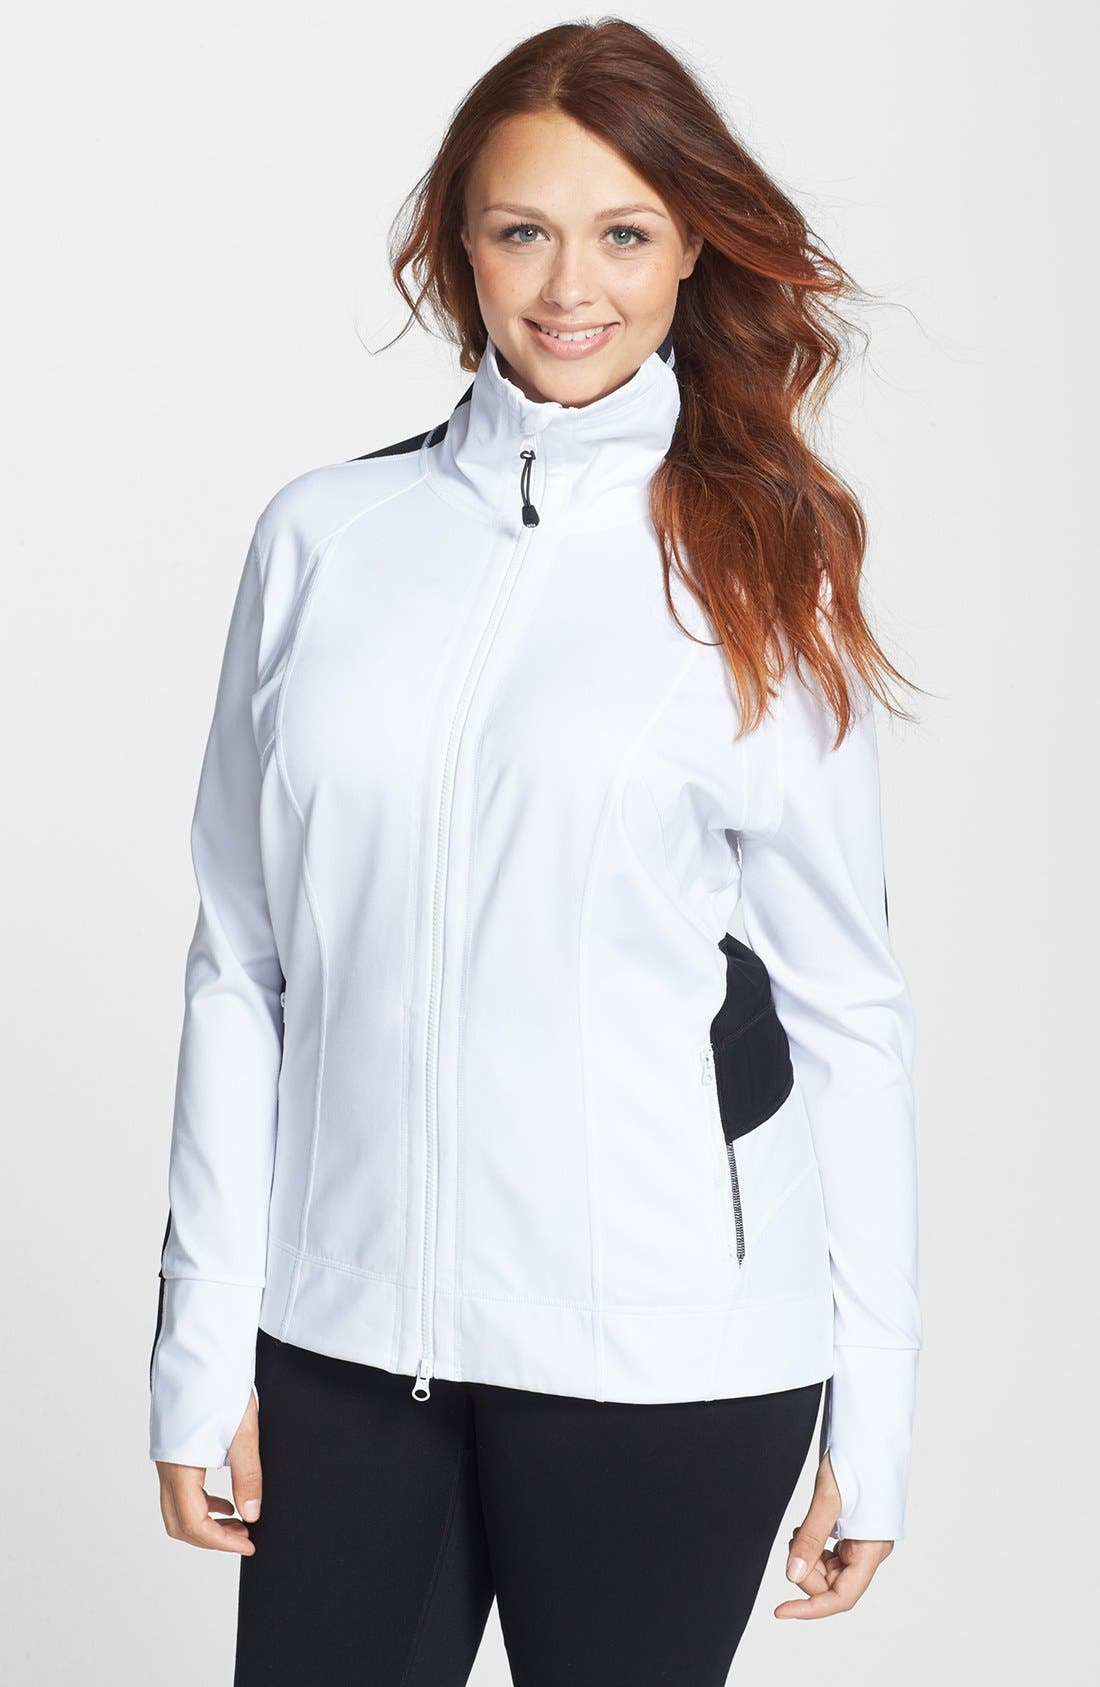 Alternate Image 1 Selected - Zella 'Bliss' Colorblock Jacket (Plus Size)